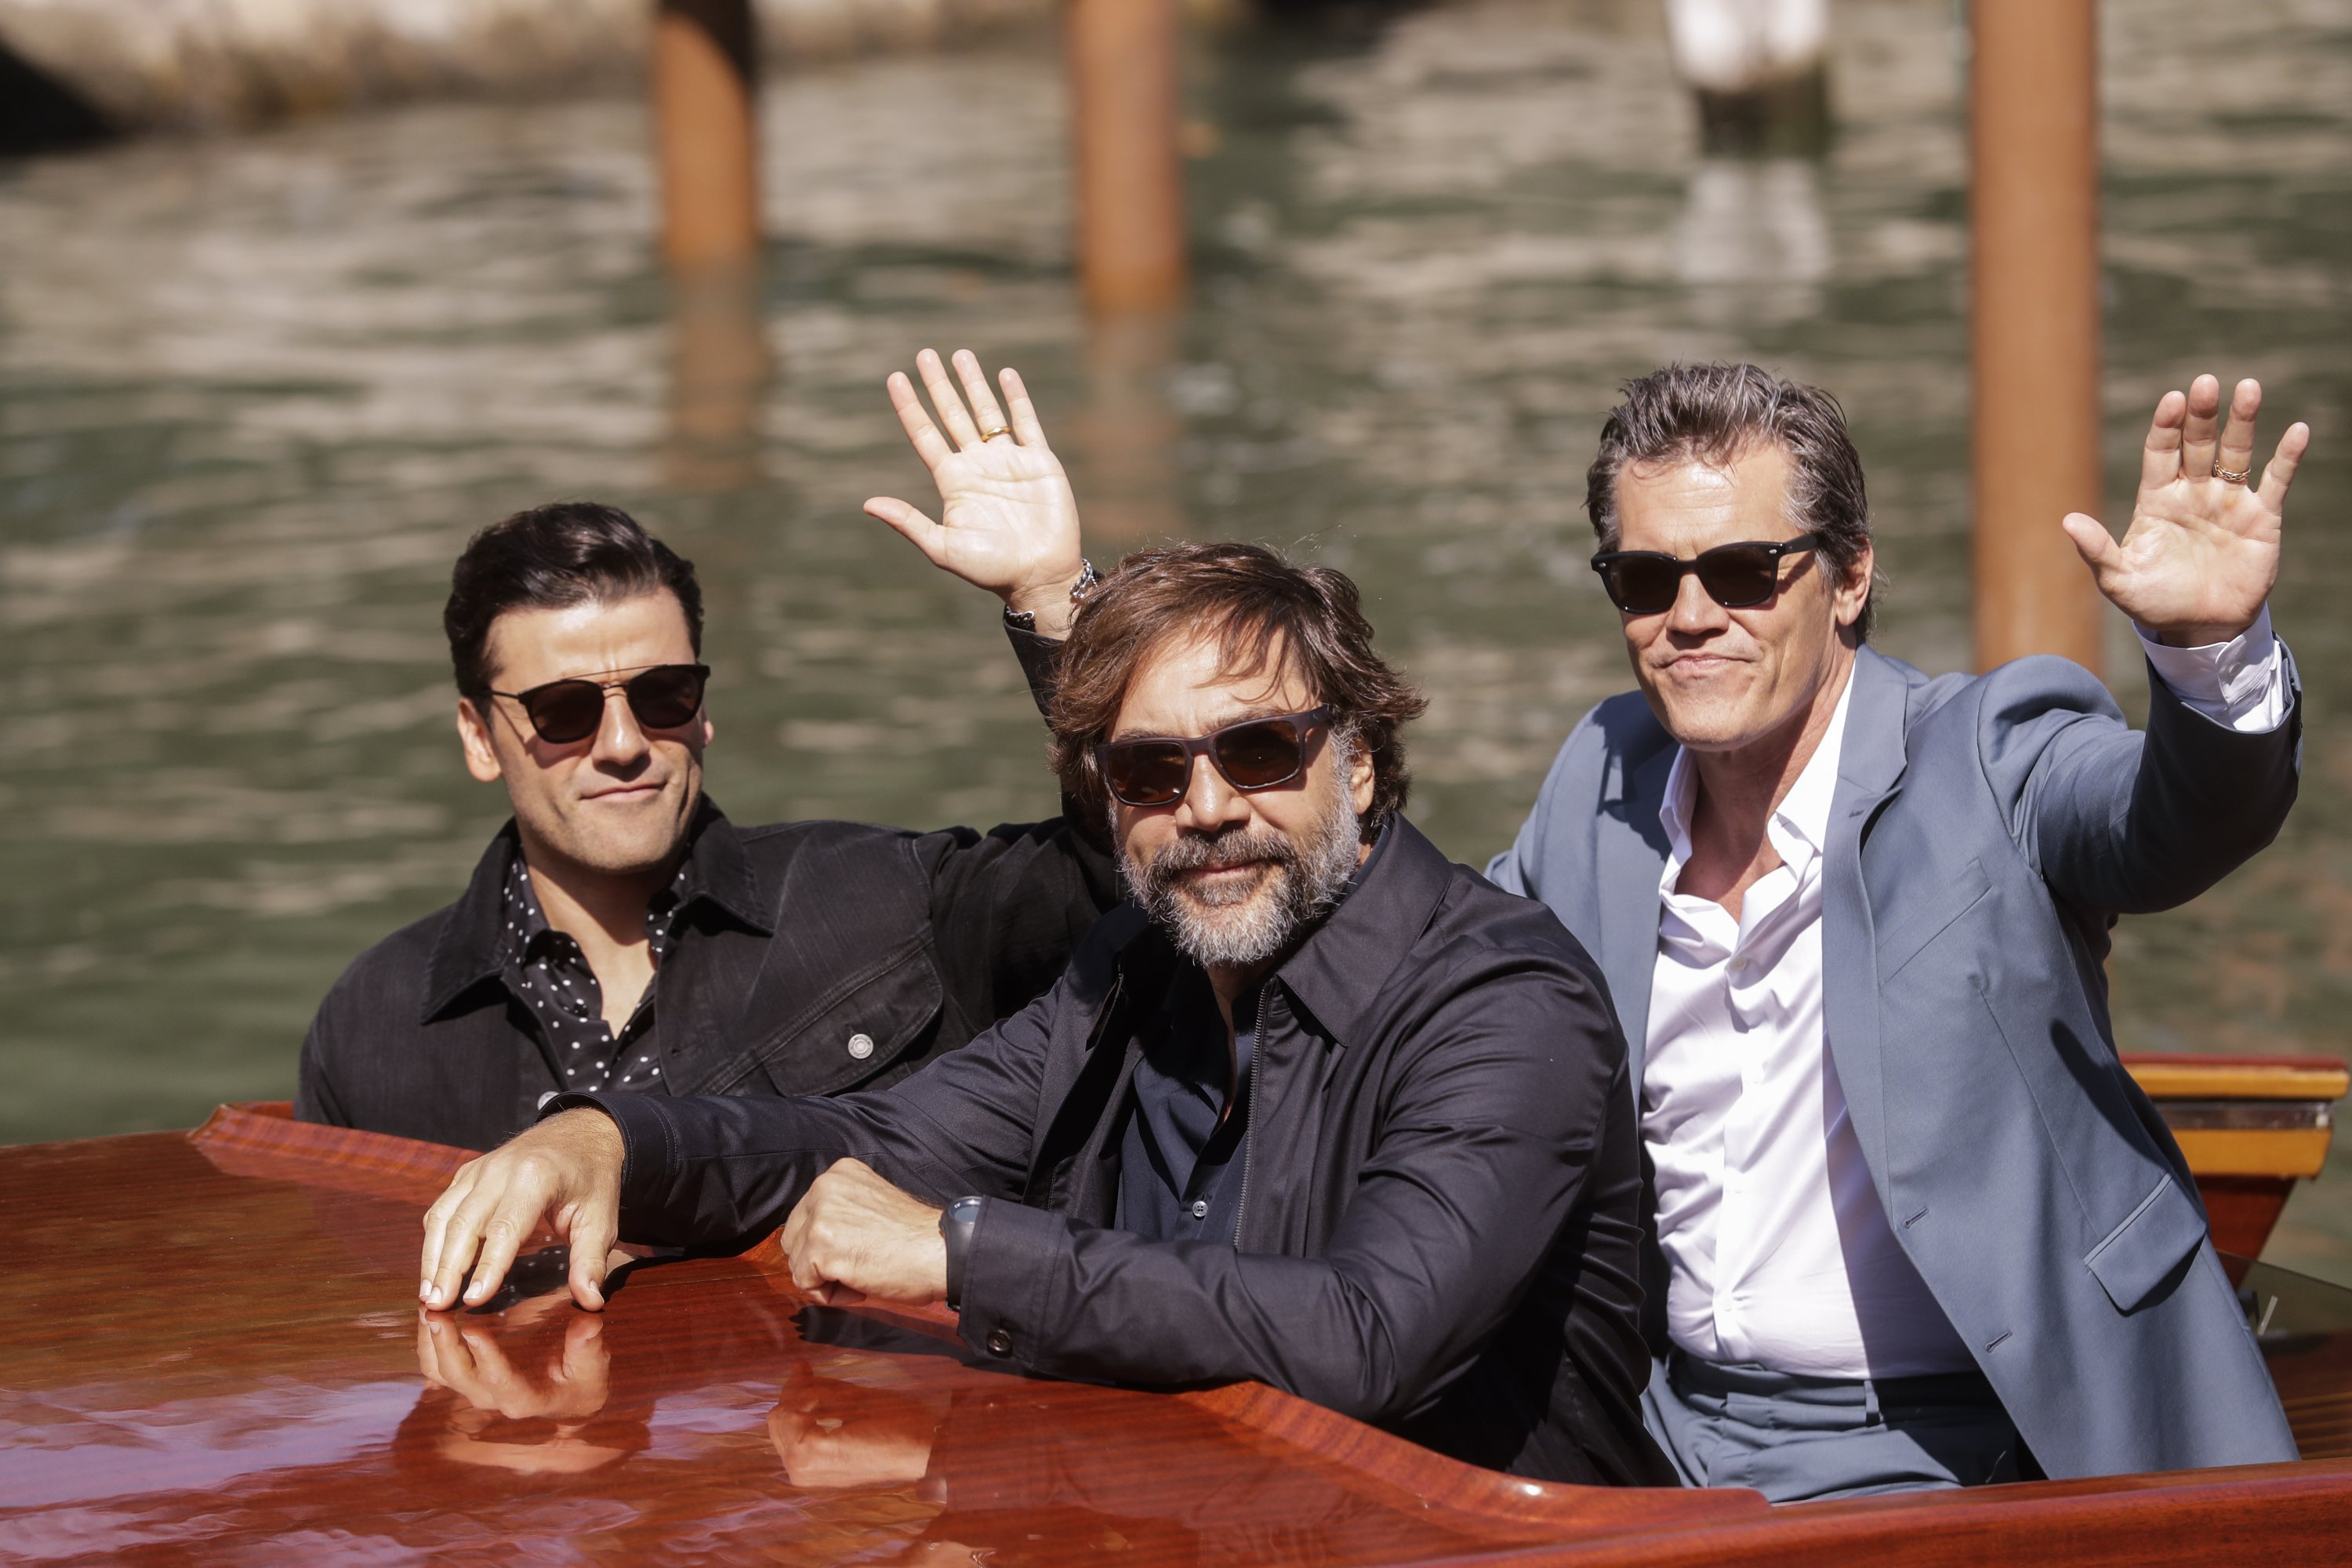 """Oscar Isaac (L), Javier Bardem (C), and Josh Brolin arrive for the photocall of the film """"Dune"""" at the 78th Venice Film Festival in Venice, Italy, Sept. 3, 2021. (AP Photo)"""